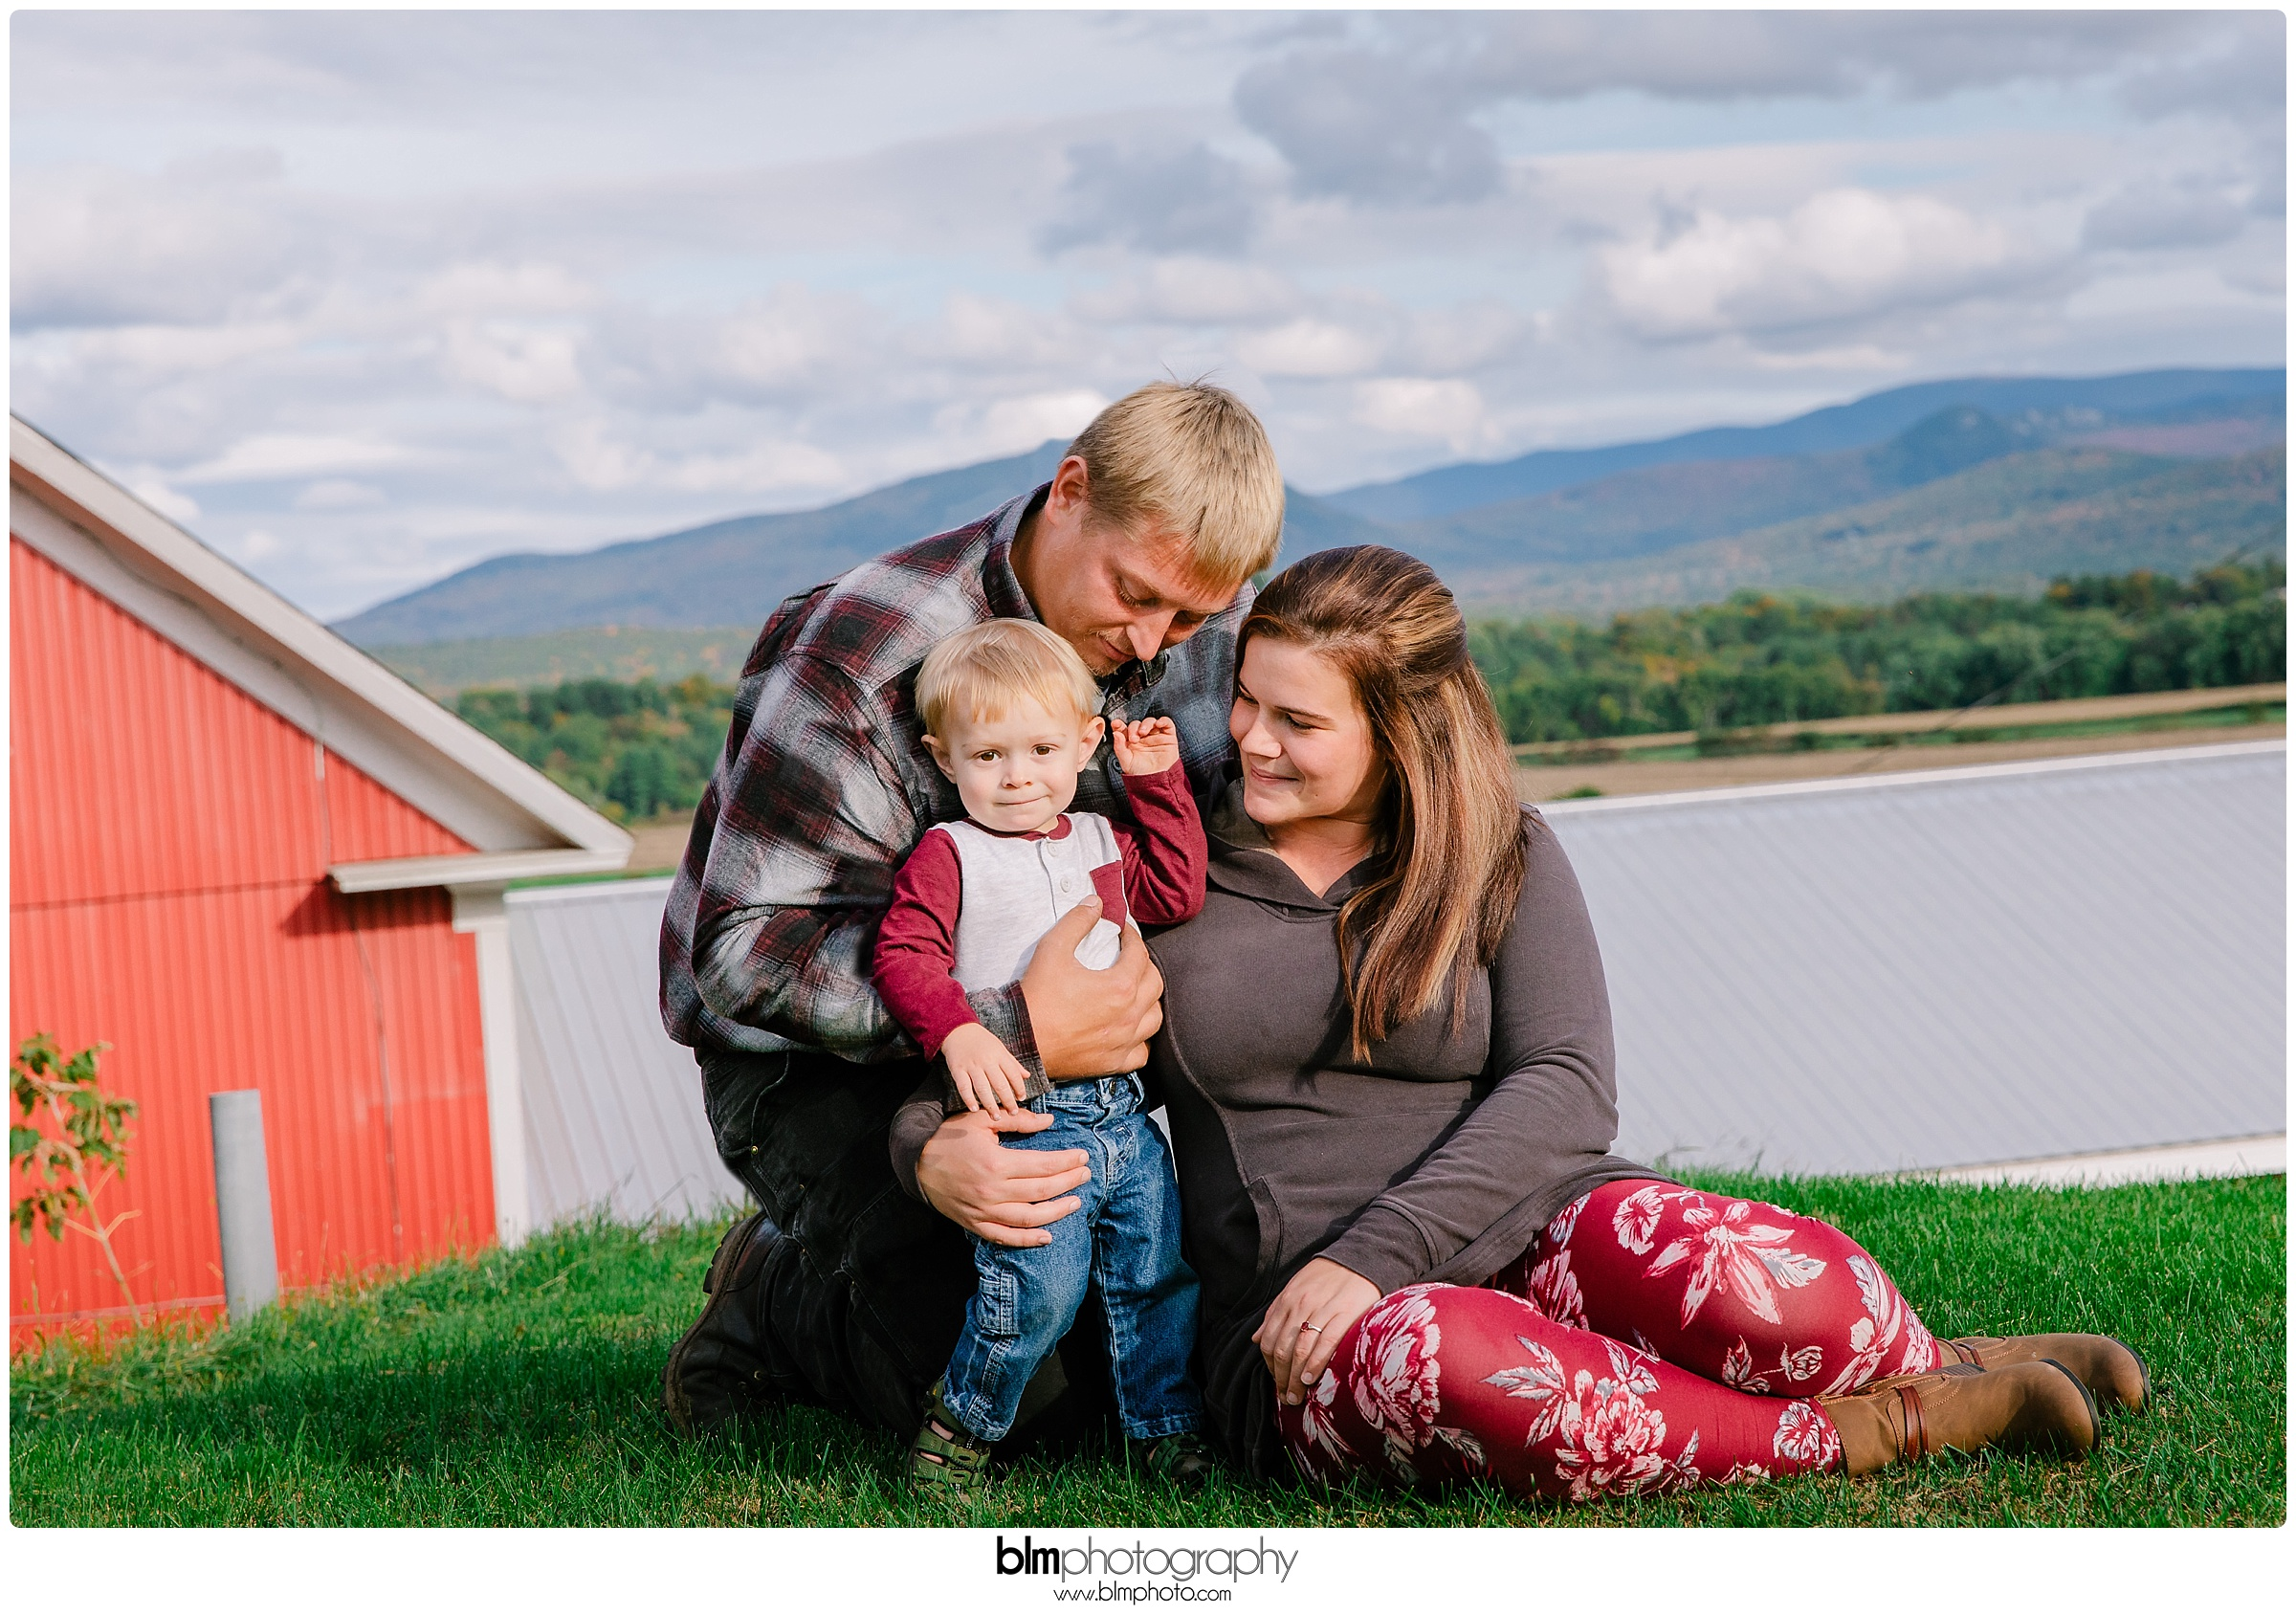 1 Year old,BLM,Bradley Nason Cole,Brianna Morrissey,Brie Morrissey,Cole Family,Cole-Smith-Family,Family Portraits,Family of 3,Farm Portraits,Justin Cole,Photo,Photographer,Photography,Sarah Faye Smith,Sep,September,Smith Family,www.blmphoto.com/contact,©BLM Photography 2018,